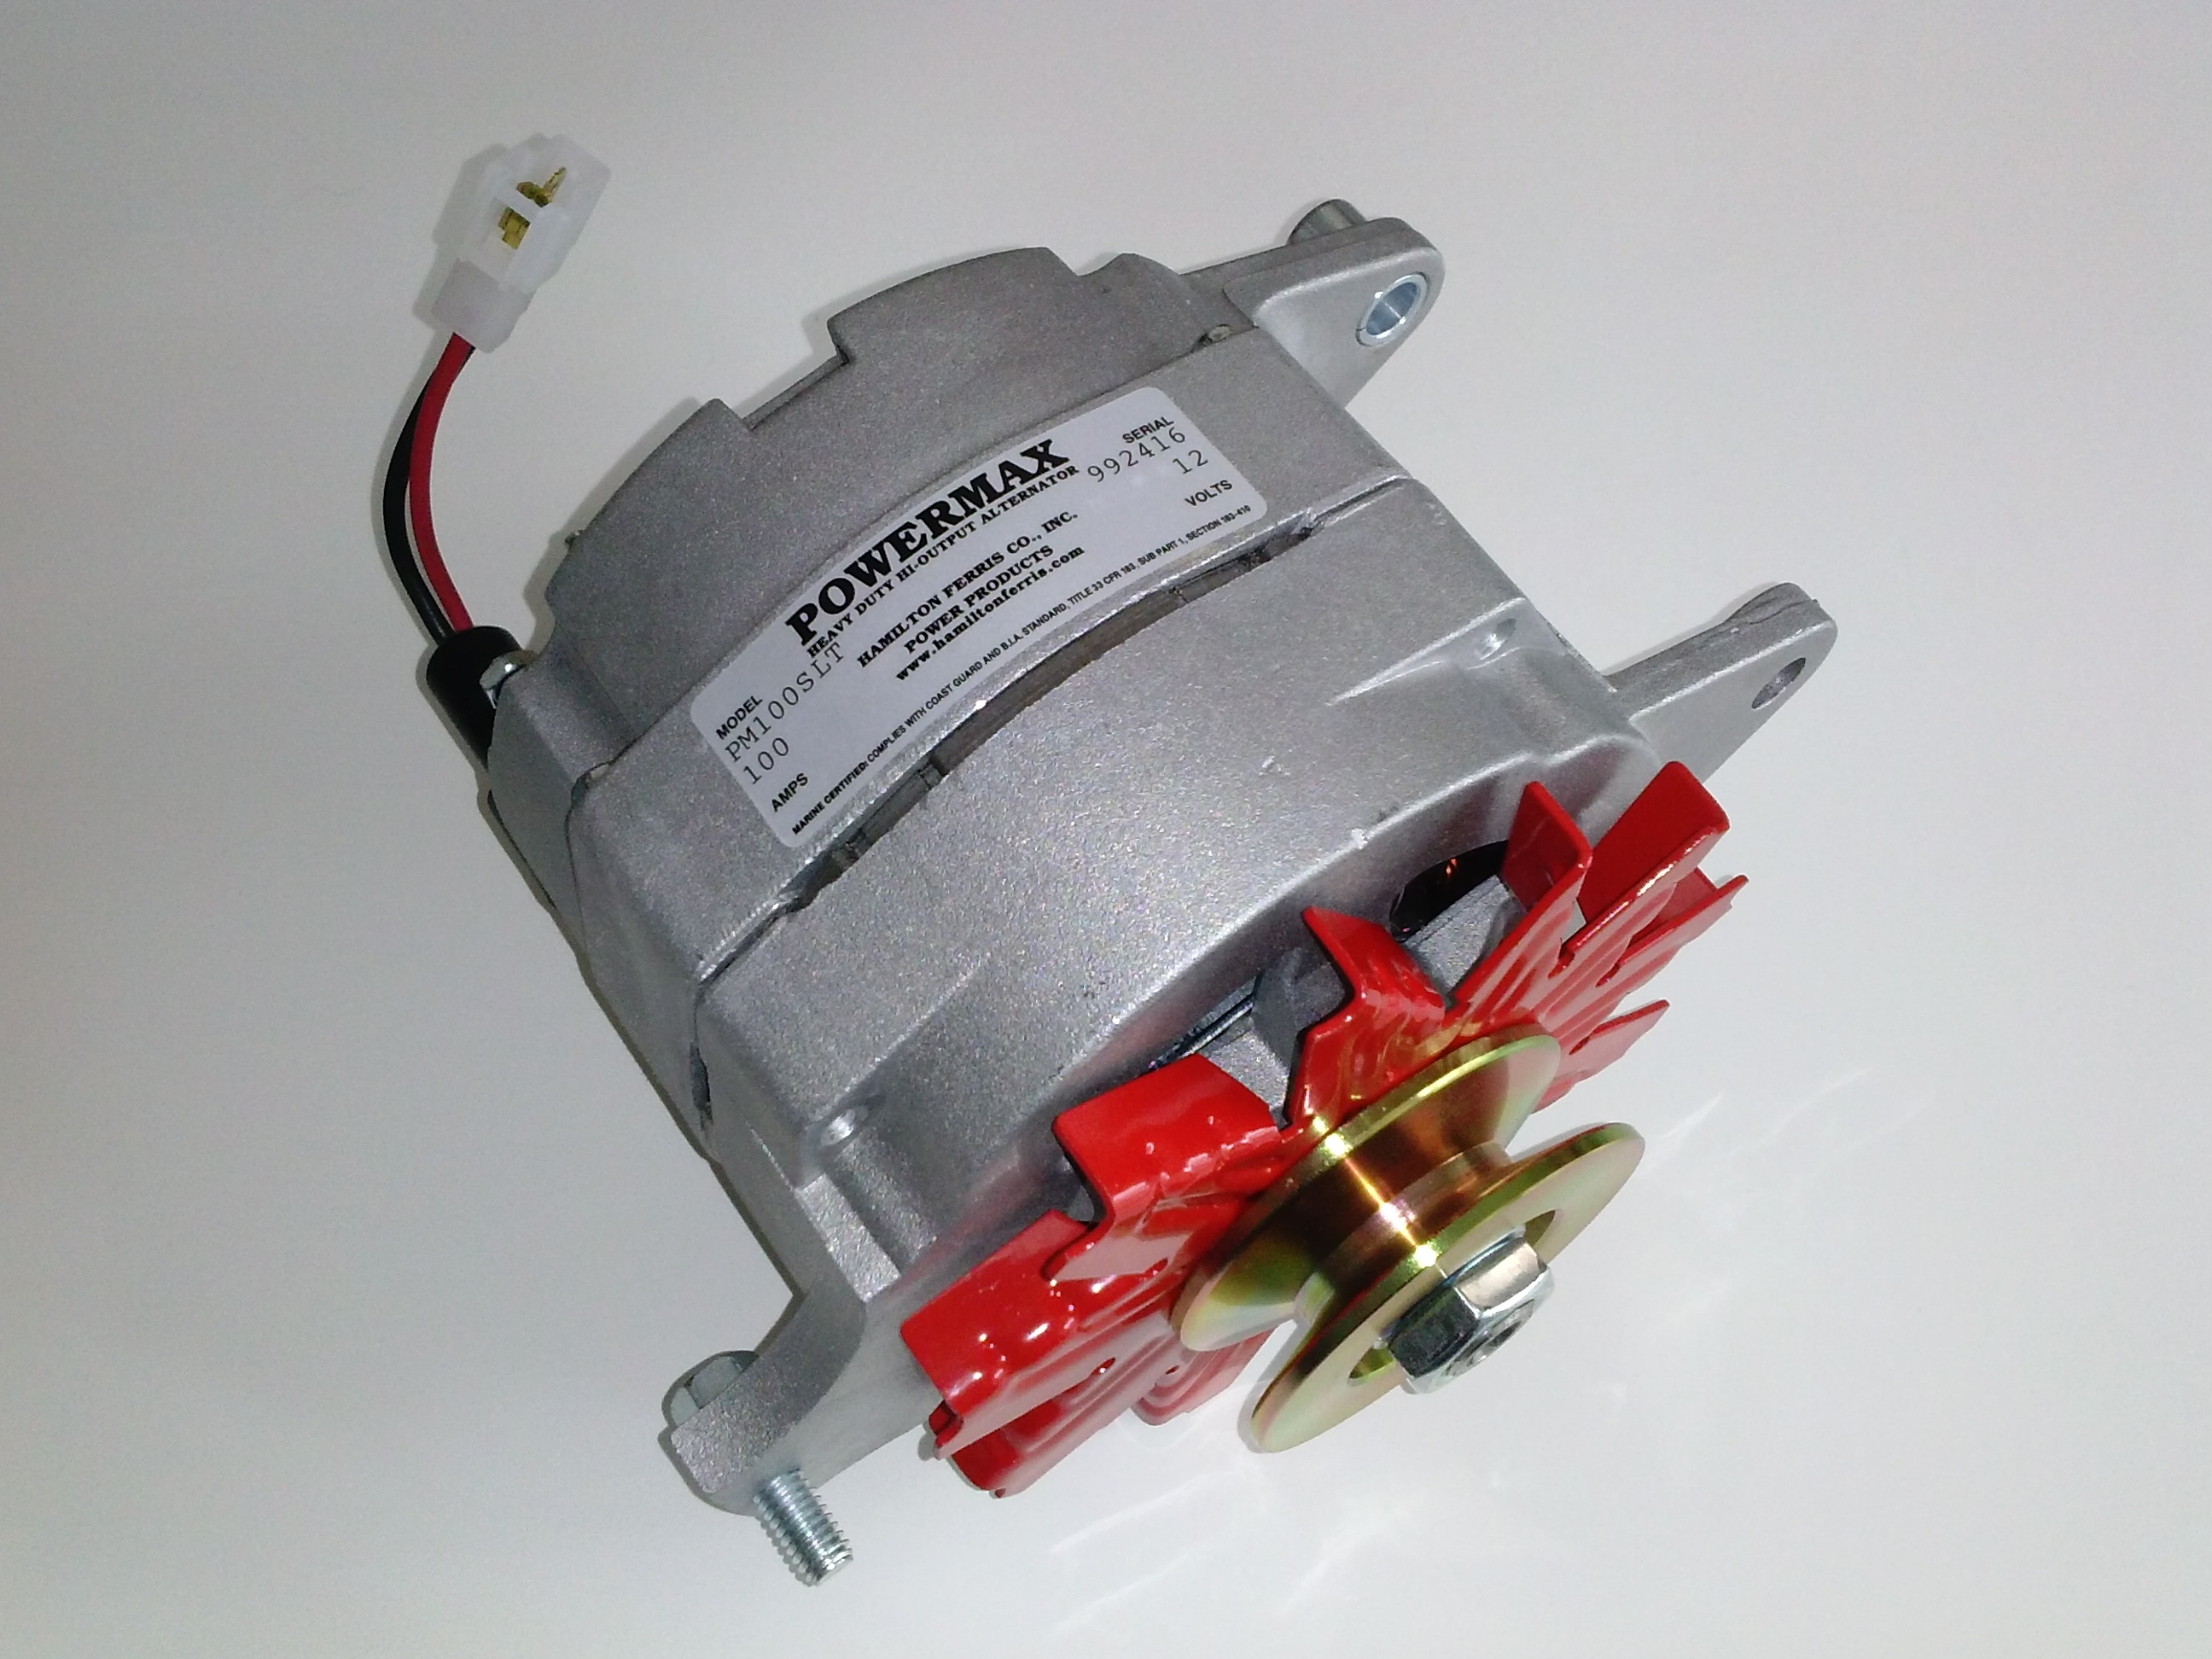 Powermax High Output Alternators Balmar Regulator Wiring Diagram Also Marine Alternator These Cost Effective Are A Perfect Solution For Applications Requiring More Power Than The Stock Engine